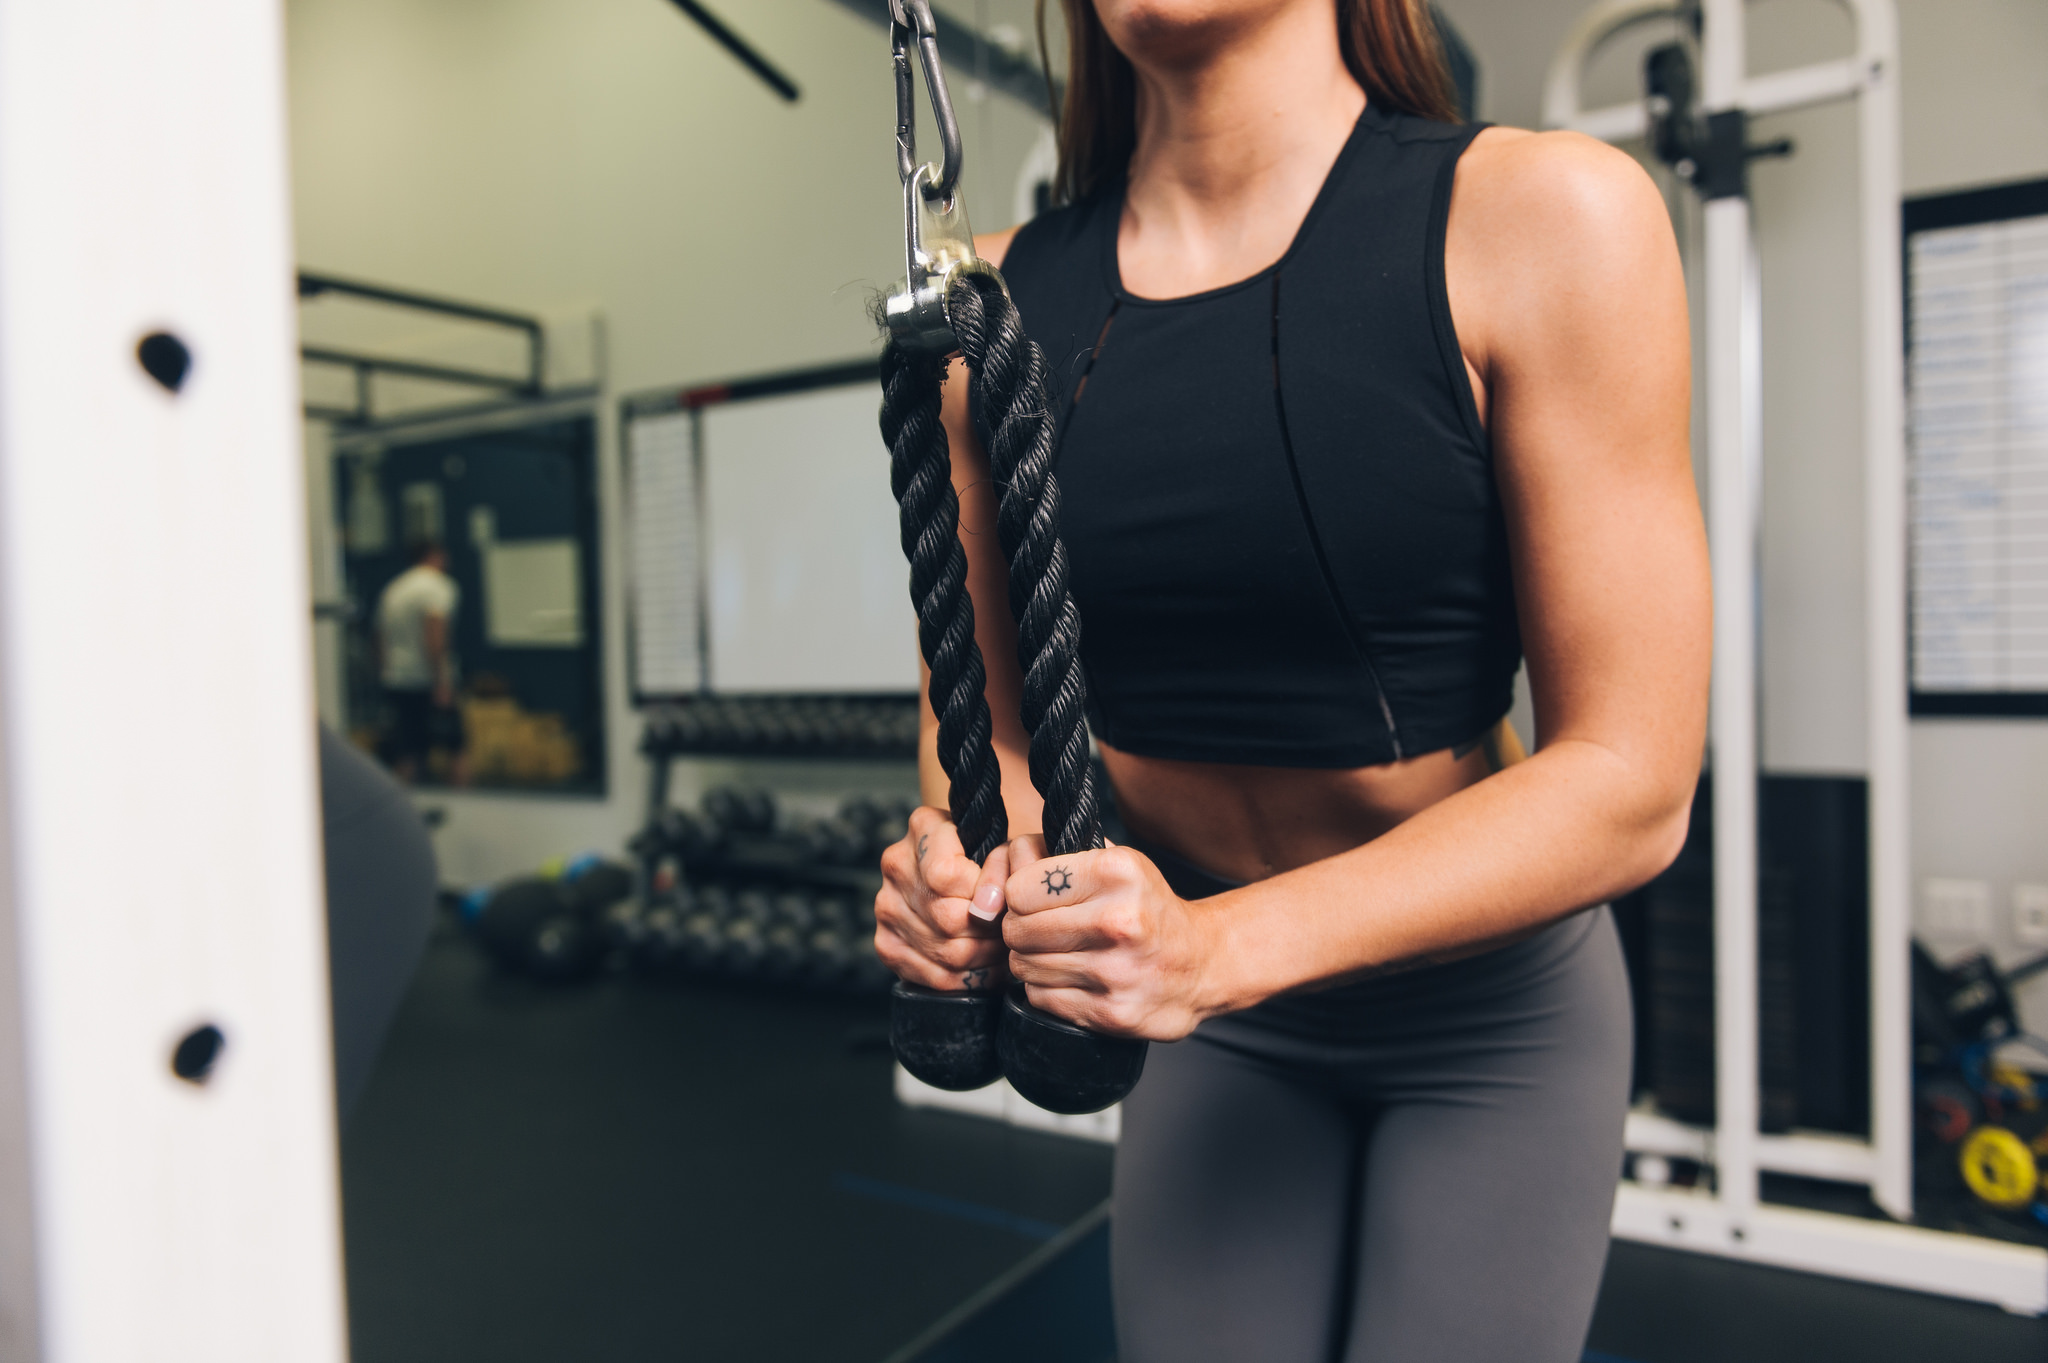 How To Find And Fix Muscle Imbalances